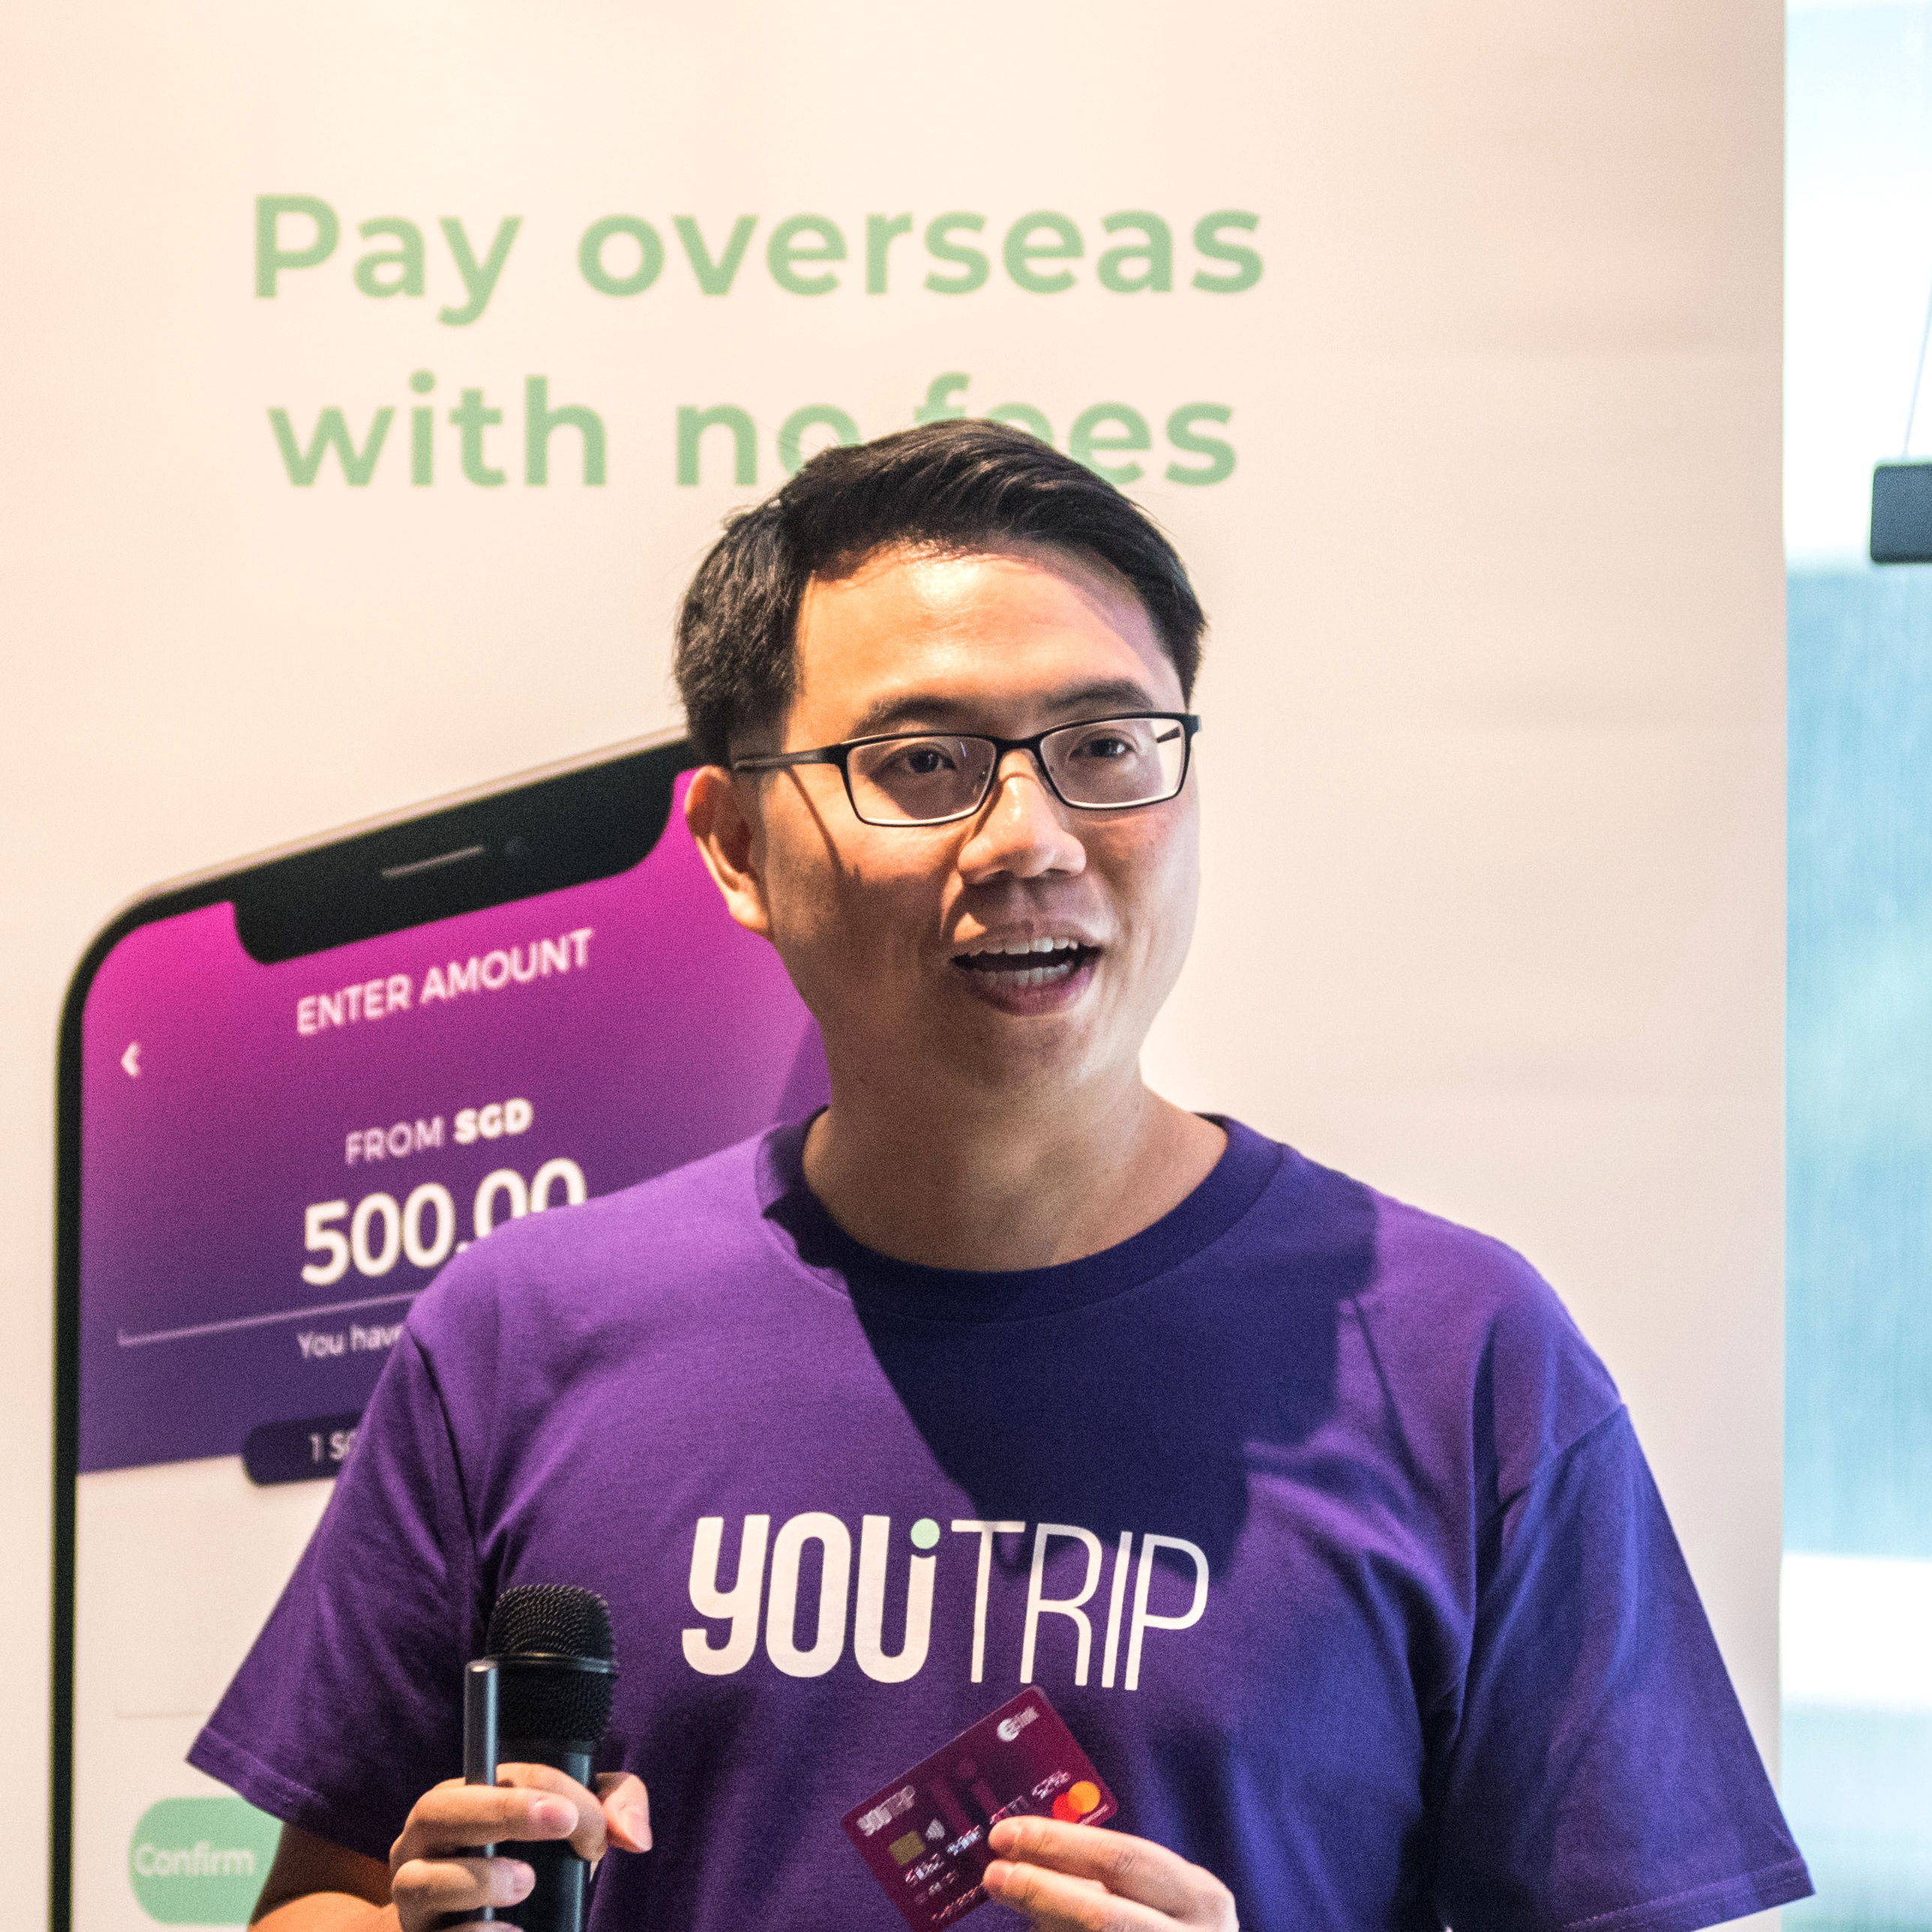 youtrip founder